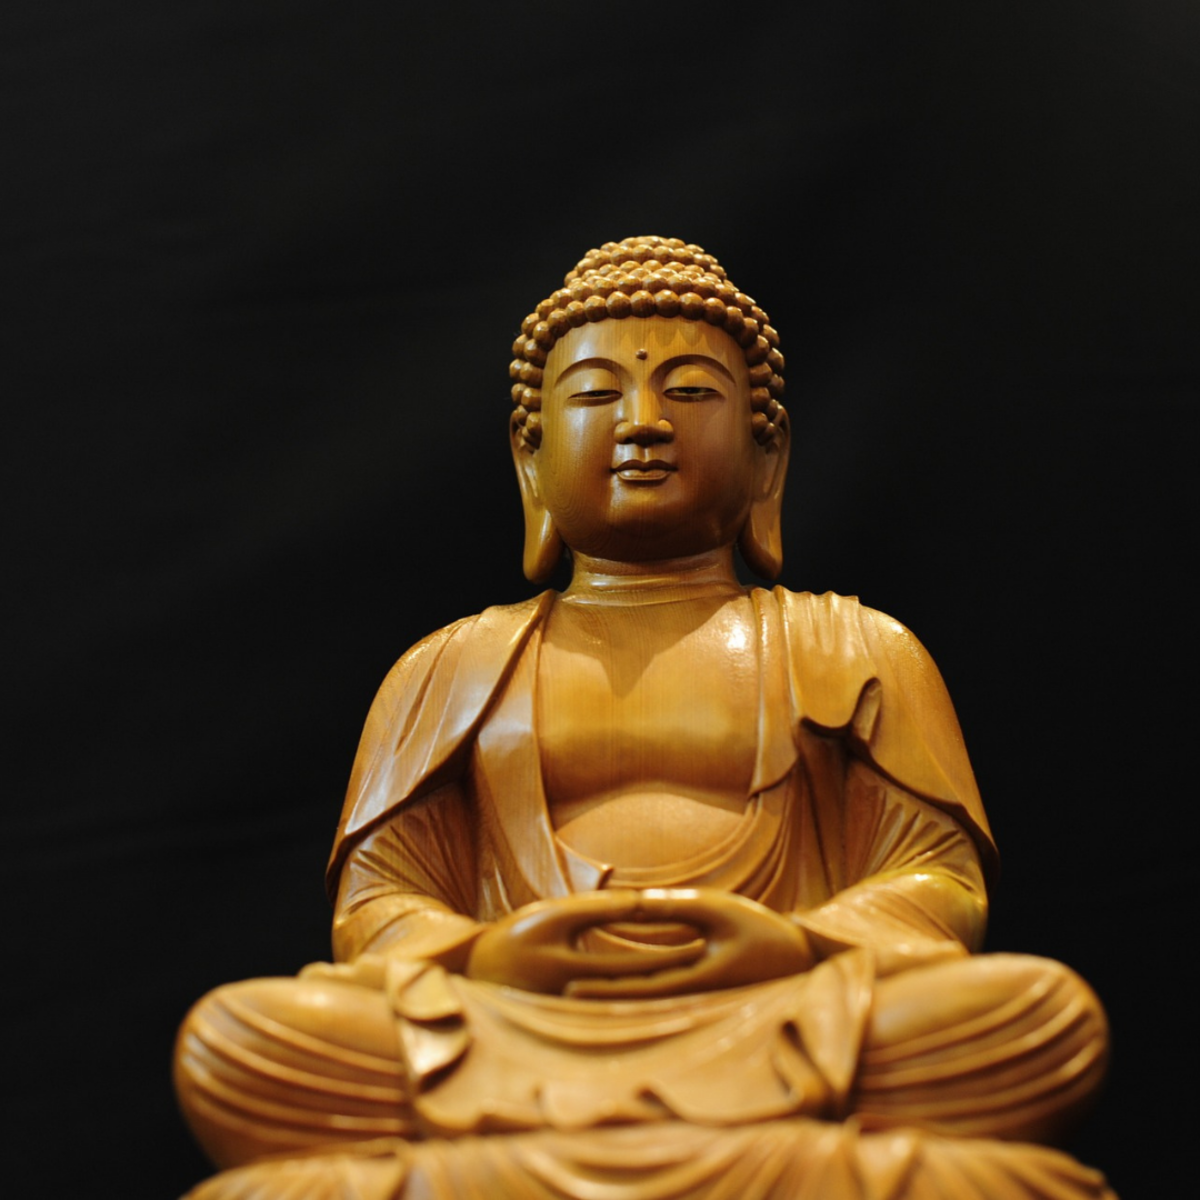 How to sit while practicing Zen meditation. Though you can sit on a chair, the basic sitting and gazing style remains the same.